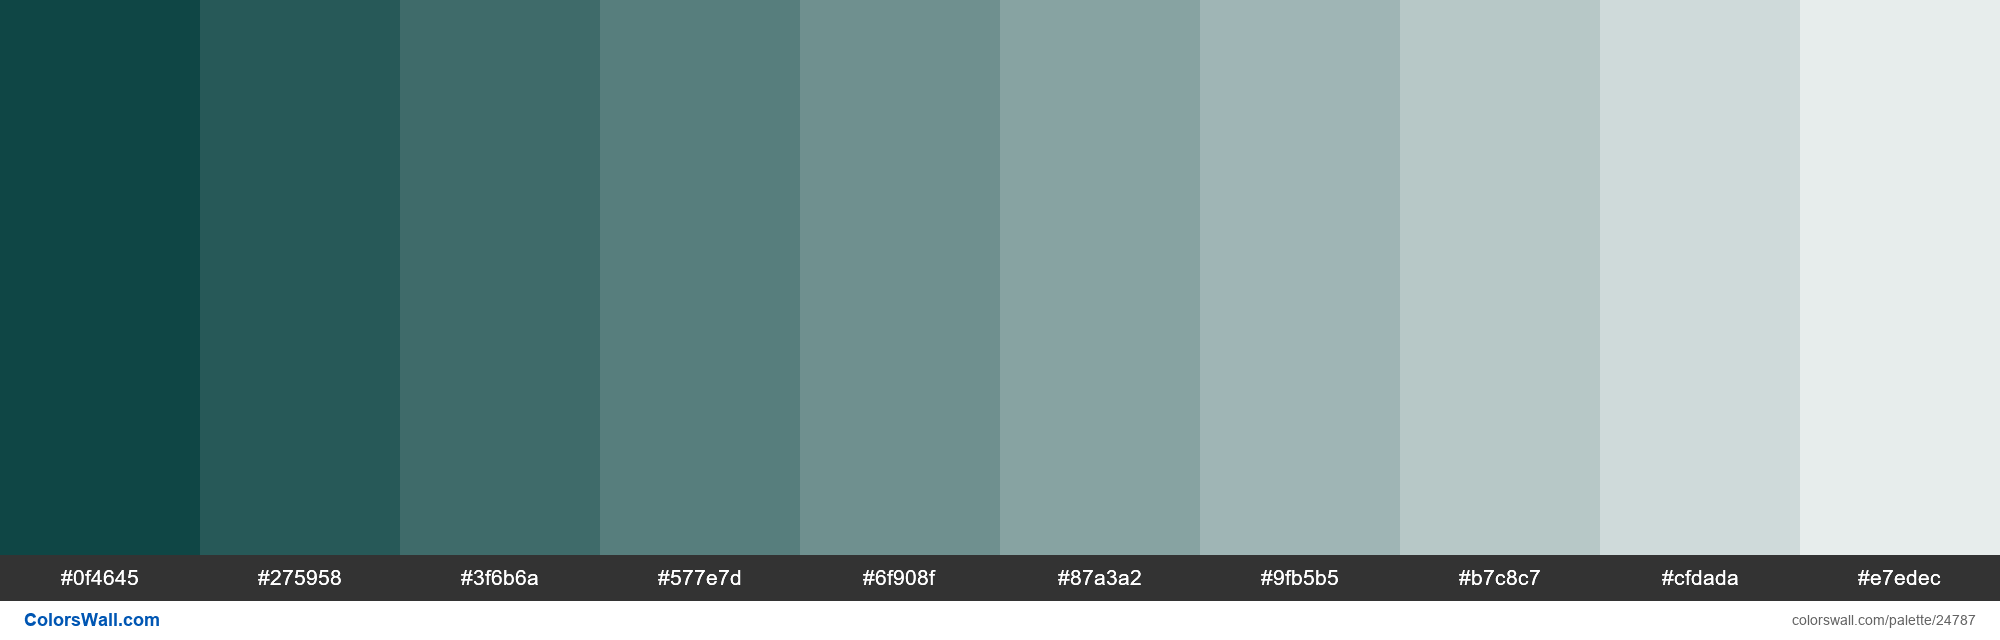 Tints of Cyprus #0F4645 hex color - #24787